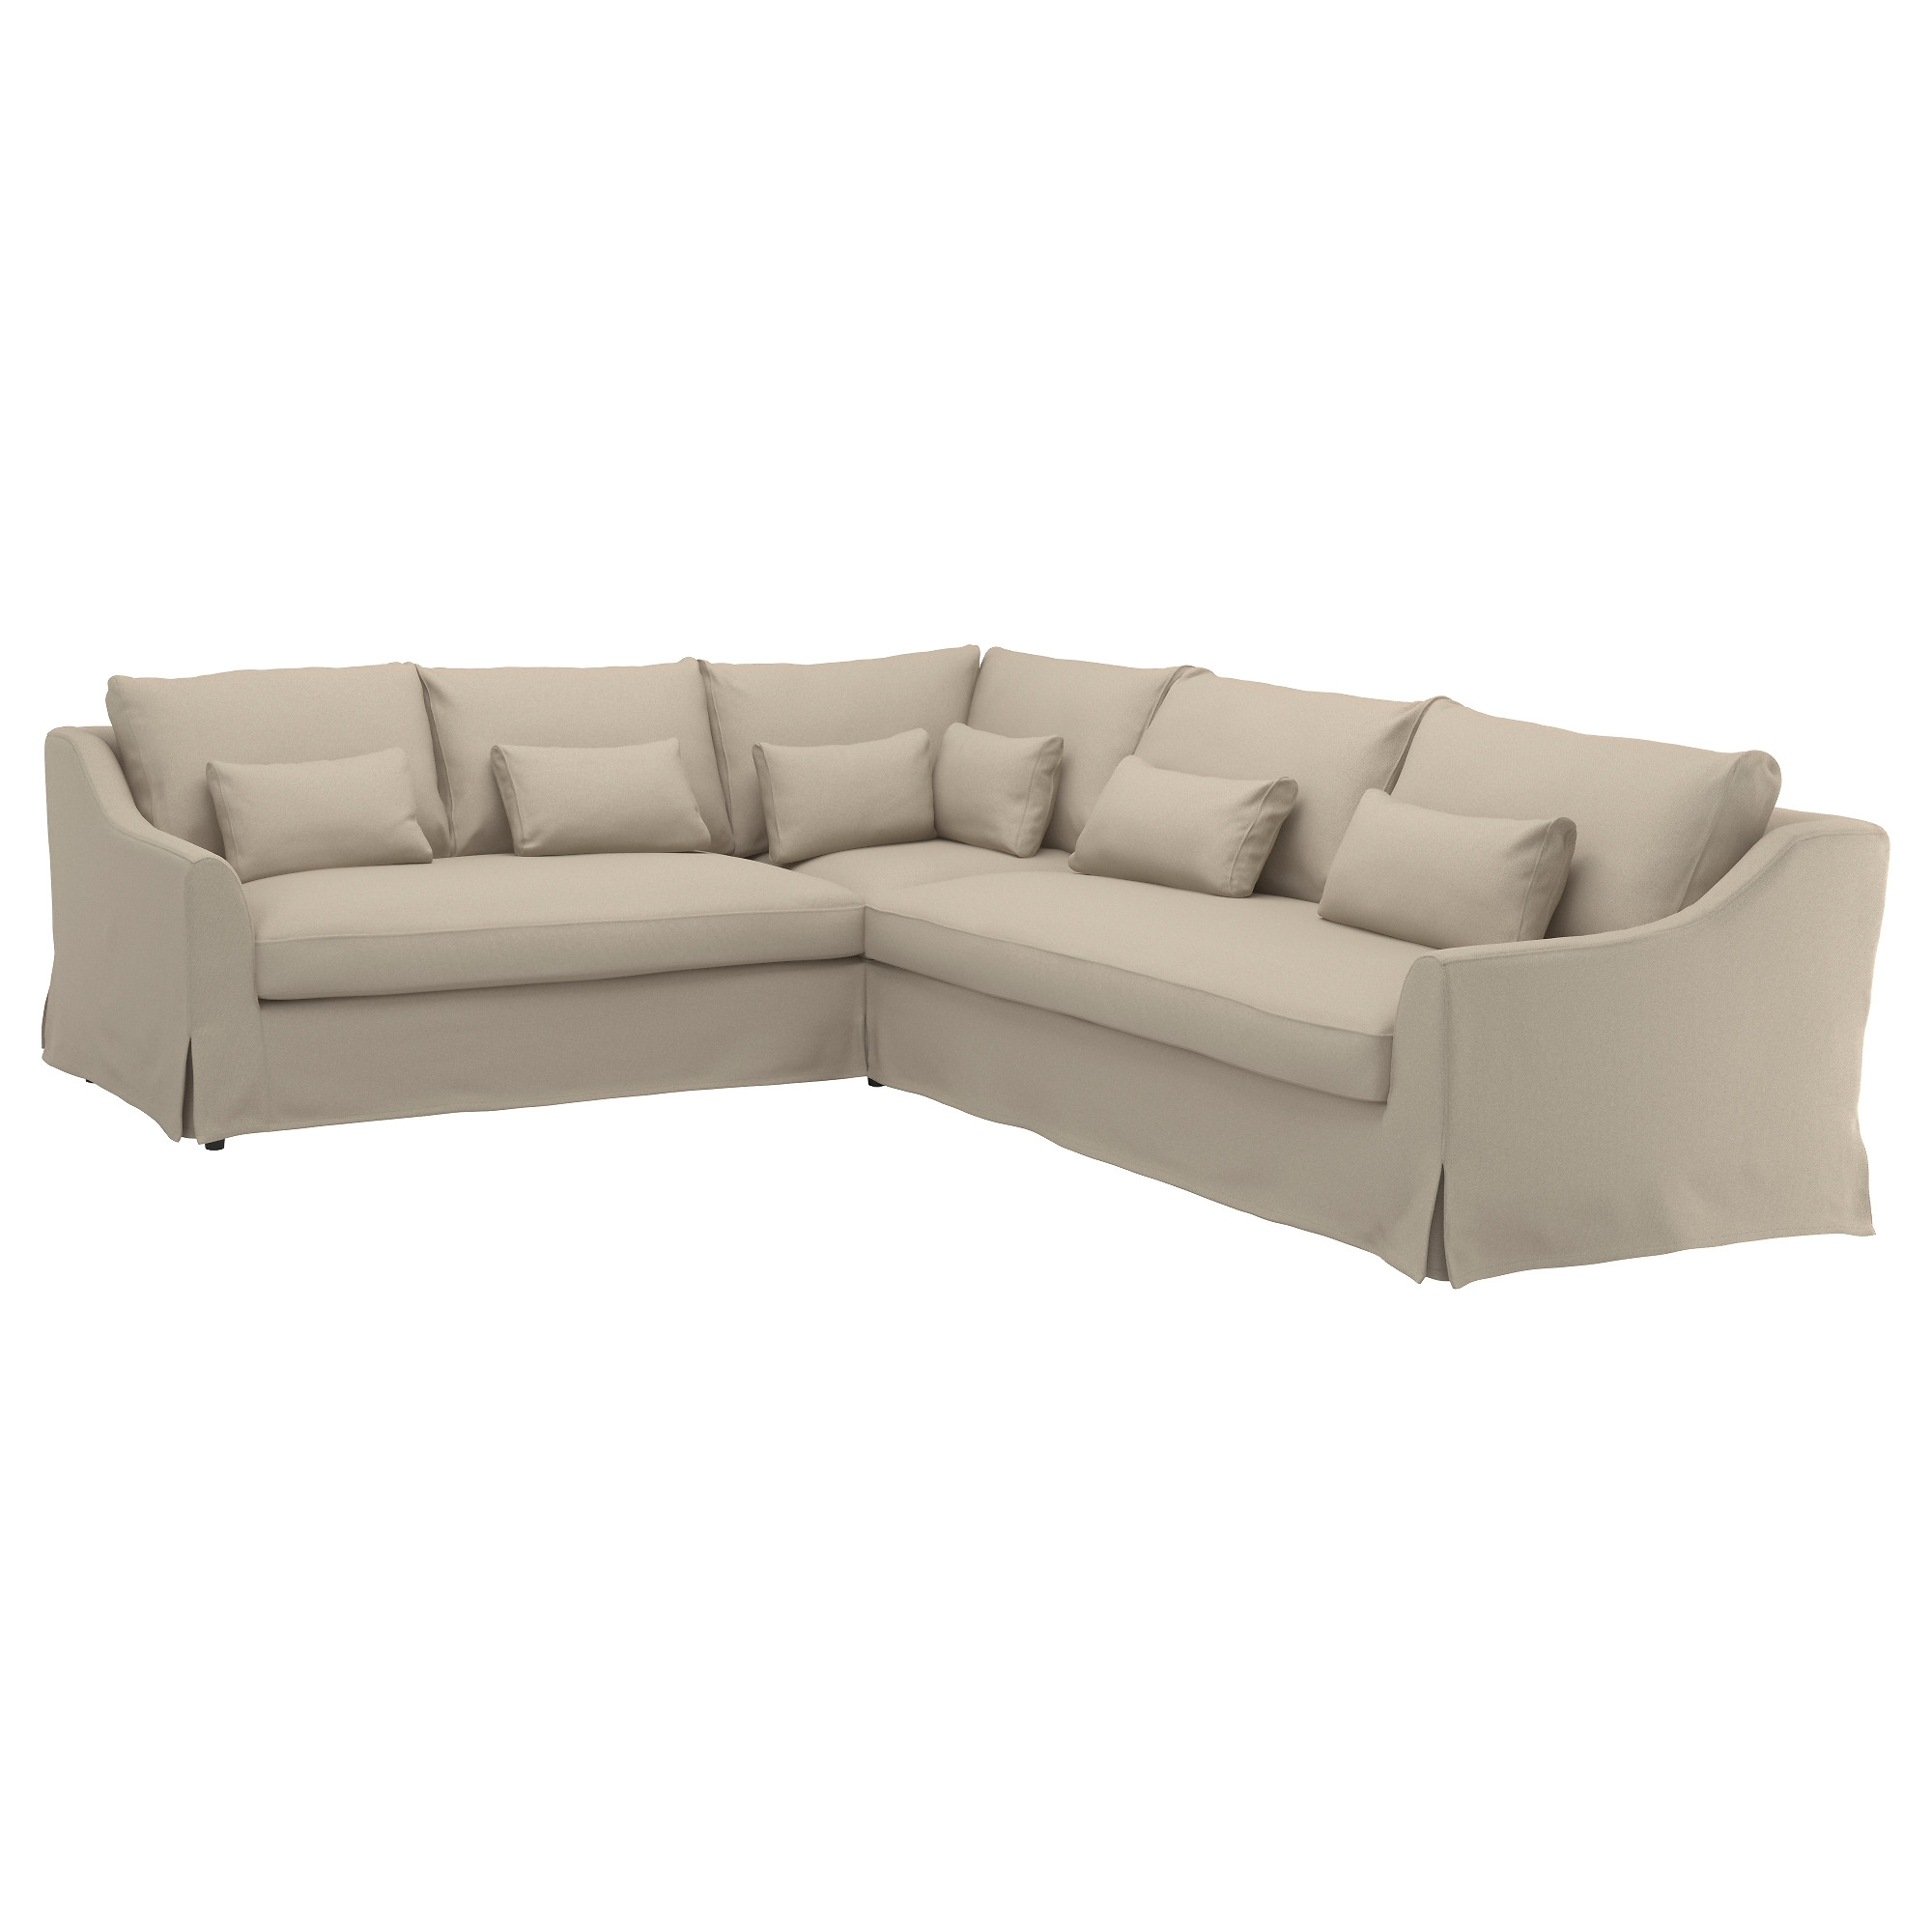 Most Recent 2 Seat Sectional Sofas Pertaining To Färlöv Sectional,5 Seat/sofa Left – Flodafors Beige – Ikea (View 16 of 20)